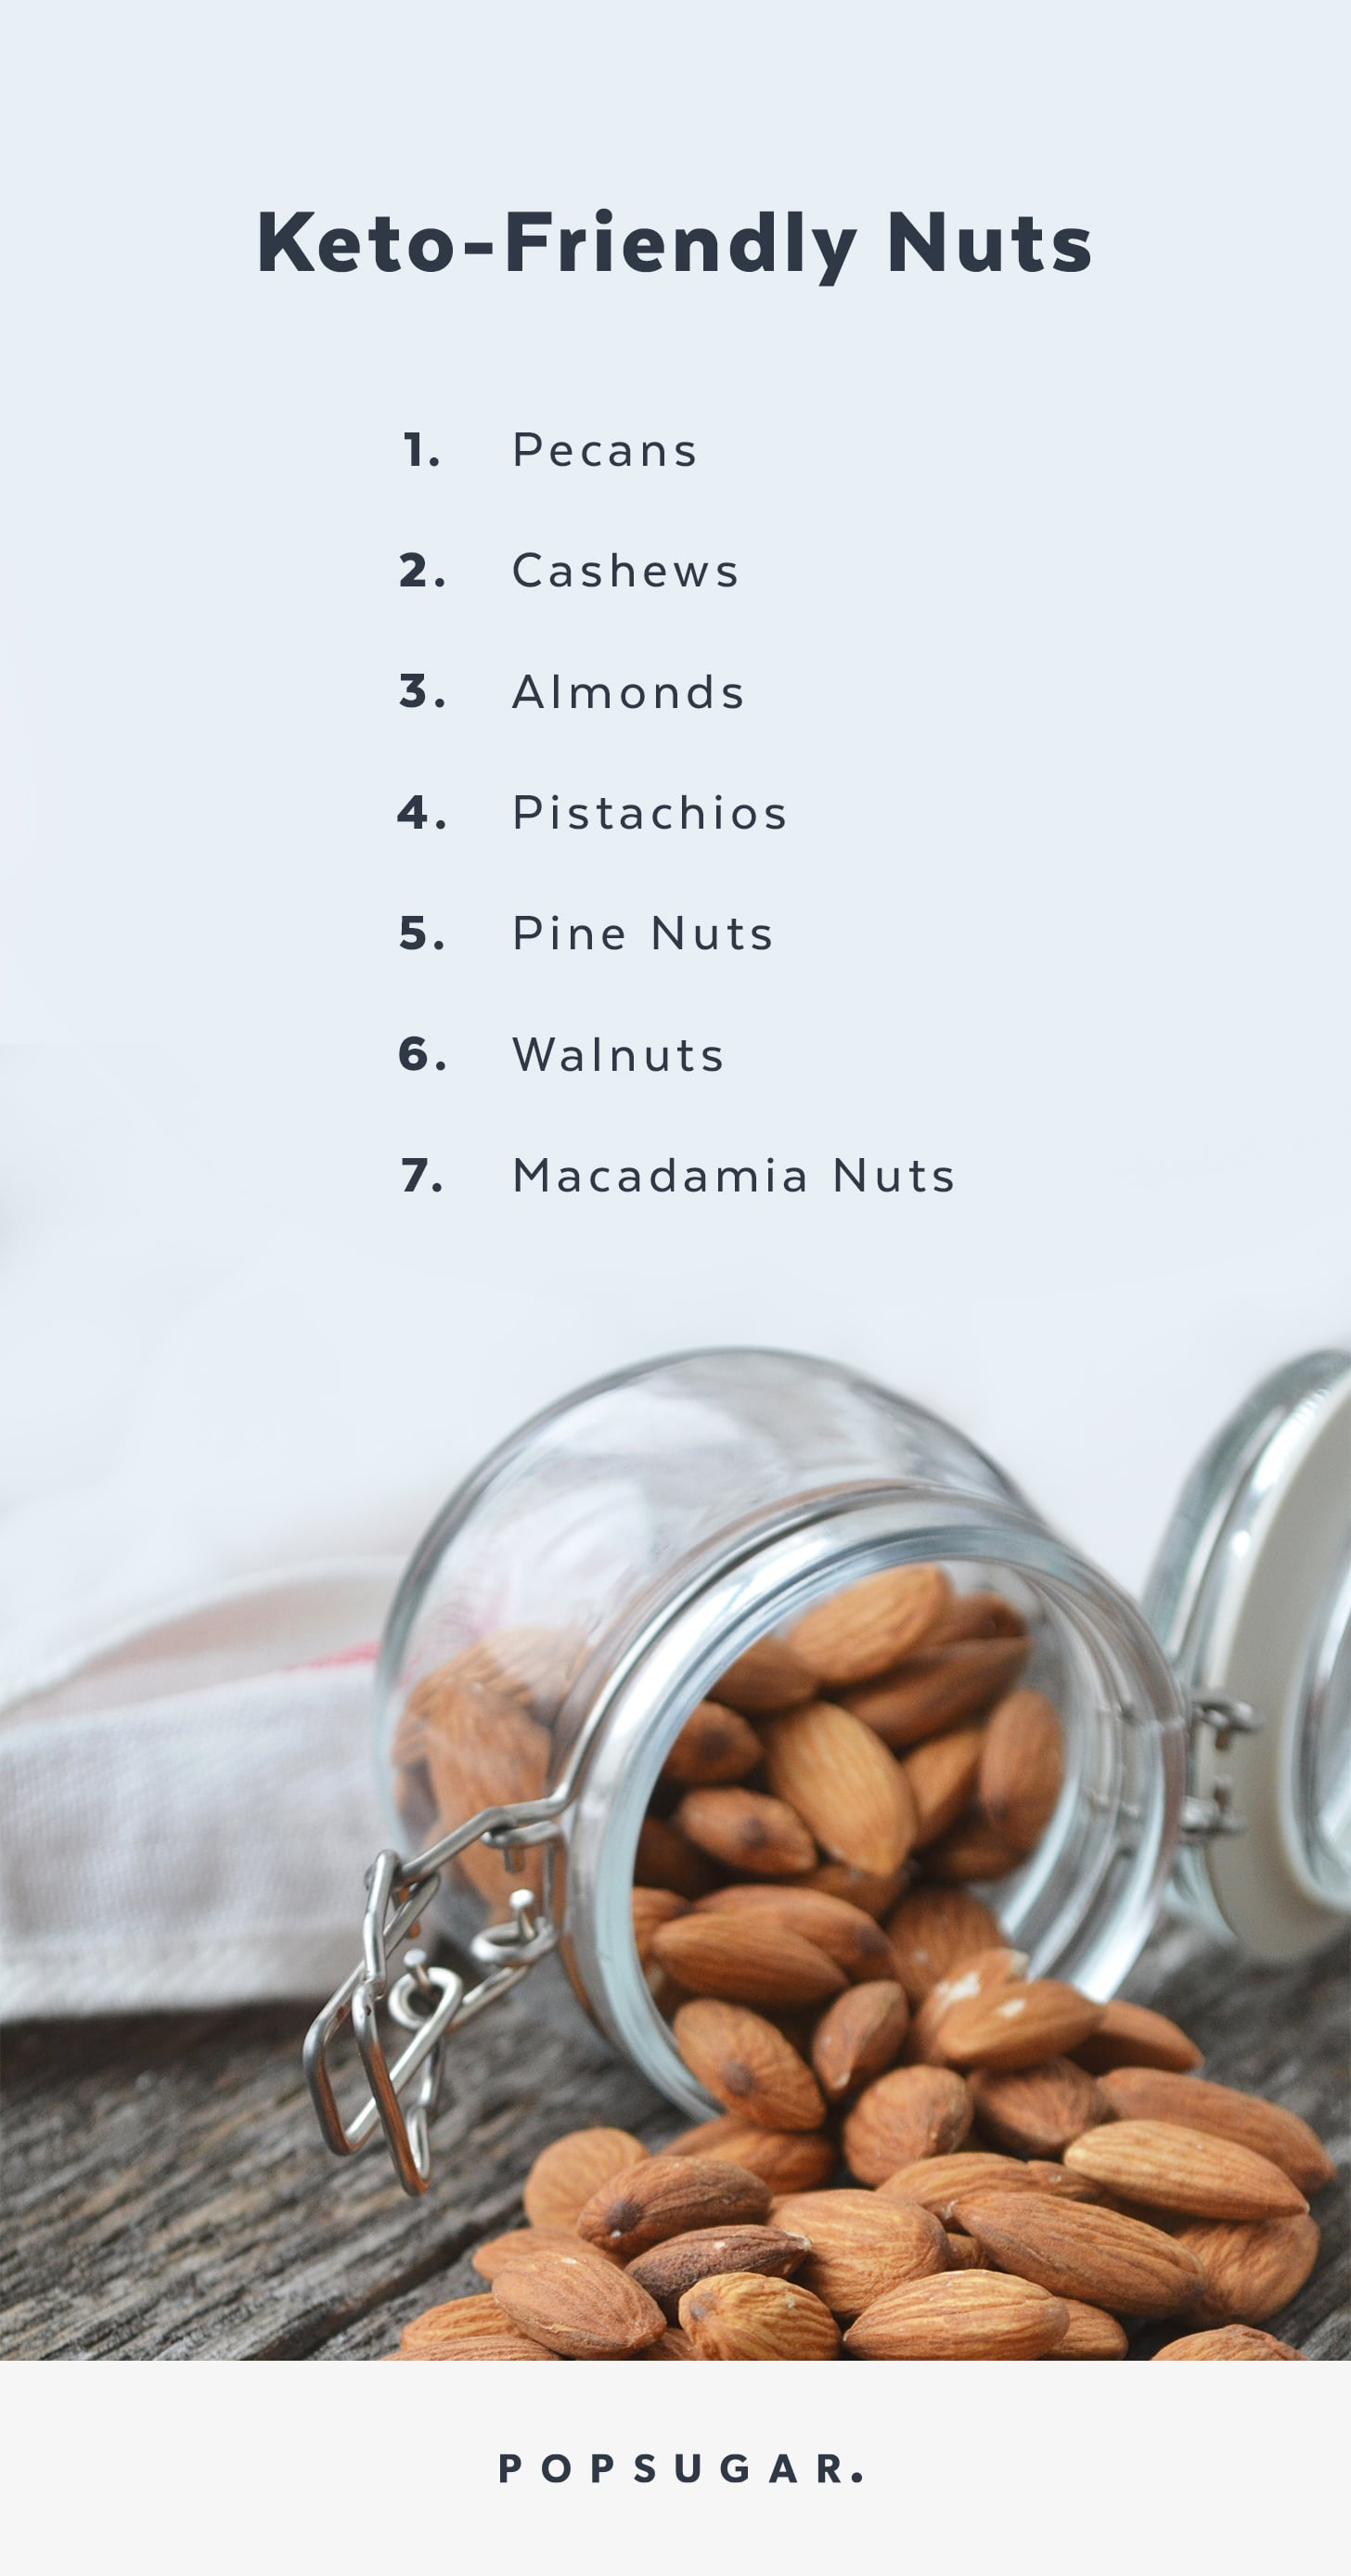 almonds on ketogenic diet